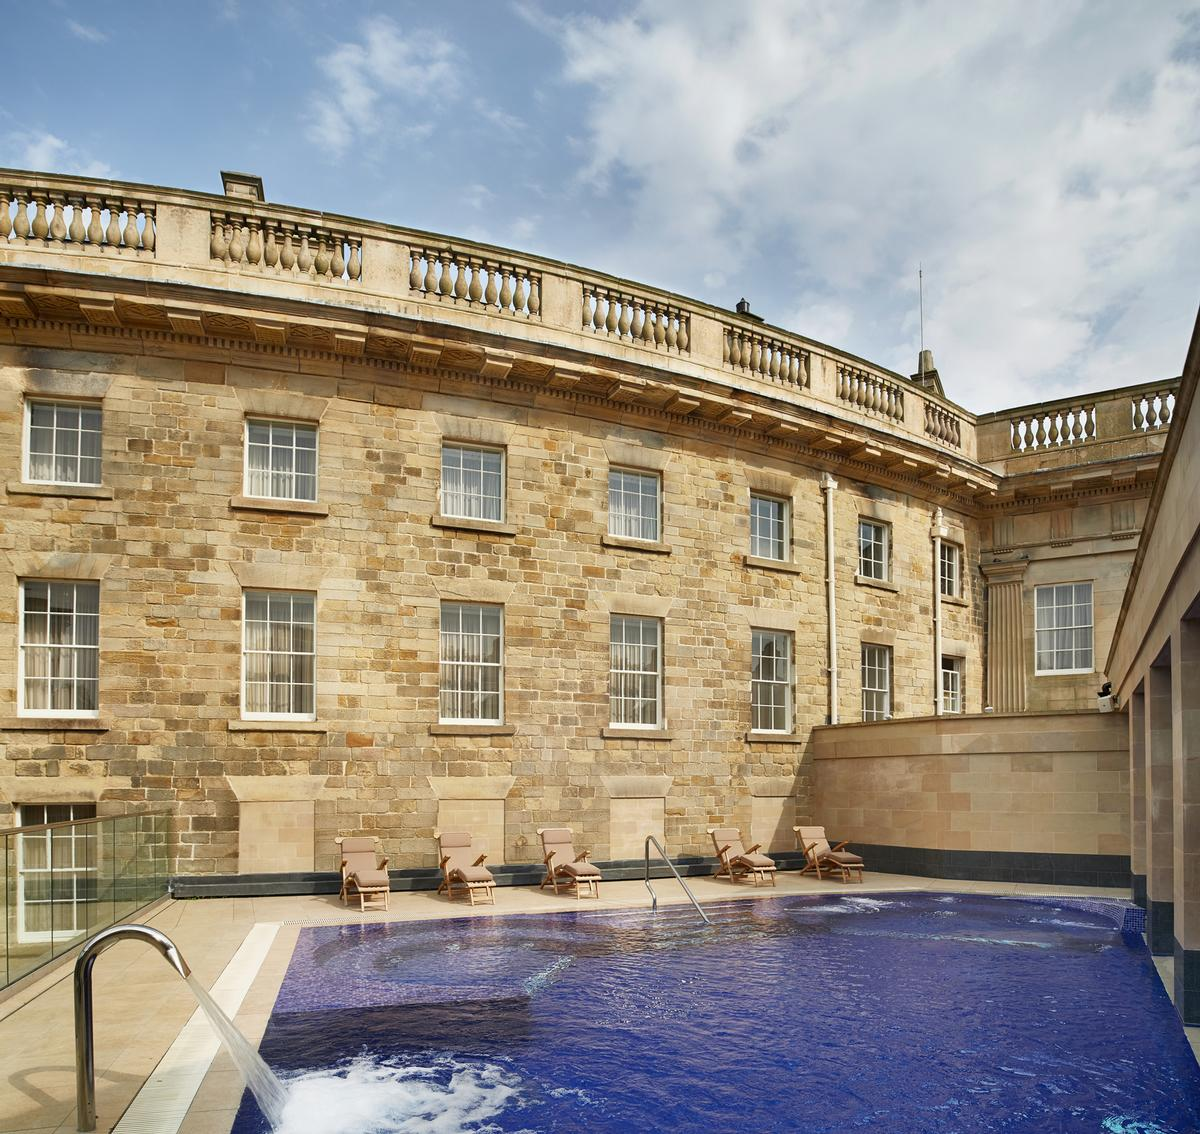 The projects' completion follows significant support from the National Lottery Heritage Fund / Buxton Crescent Hotel